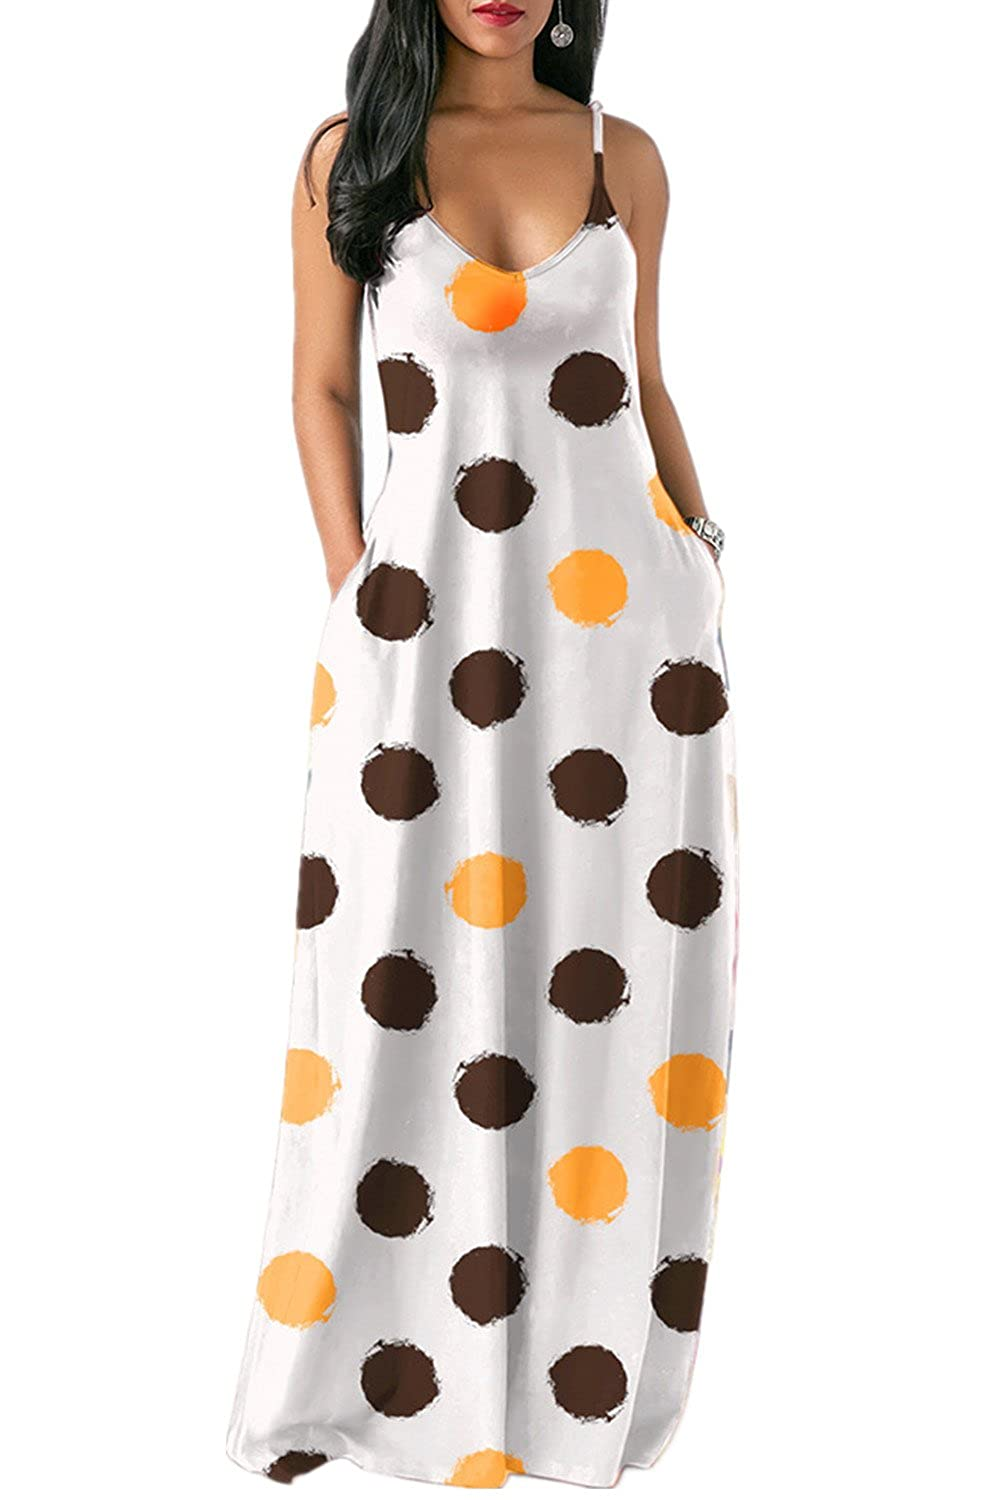 09f285807ce9 ATTENTION: There are Rainbow Tie Dye Print, Polka Dots availble for this  dresses. Please check carefully before you order this maxi dress! Style:  Loose ...